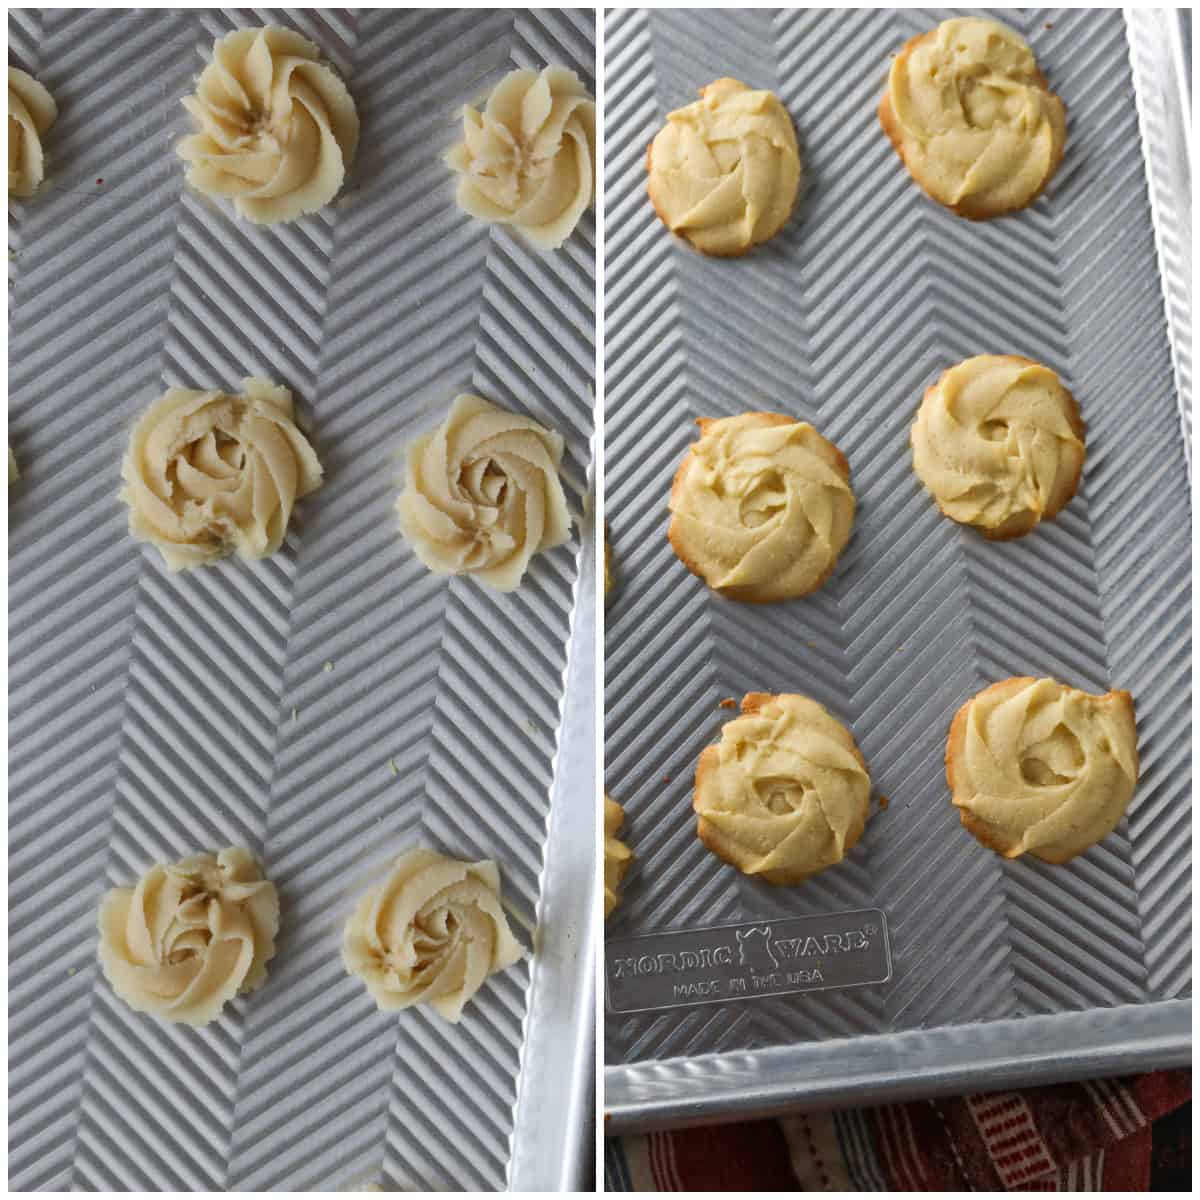 The butter cookies before and after baking.